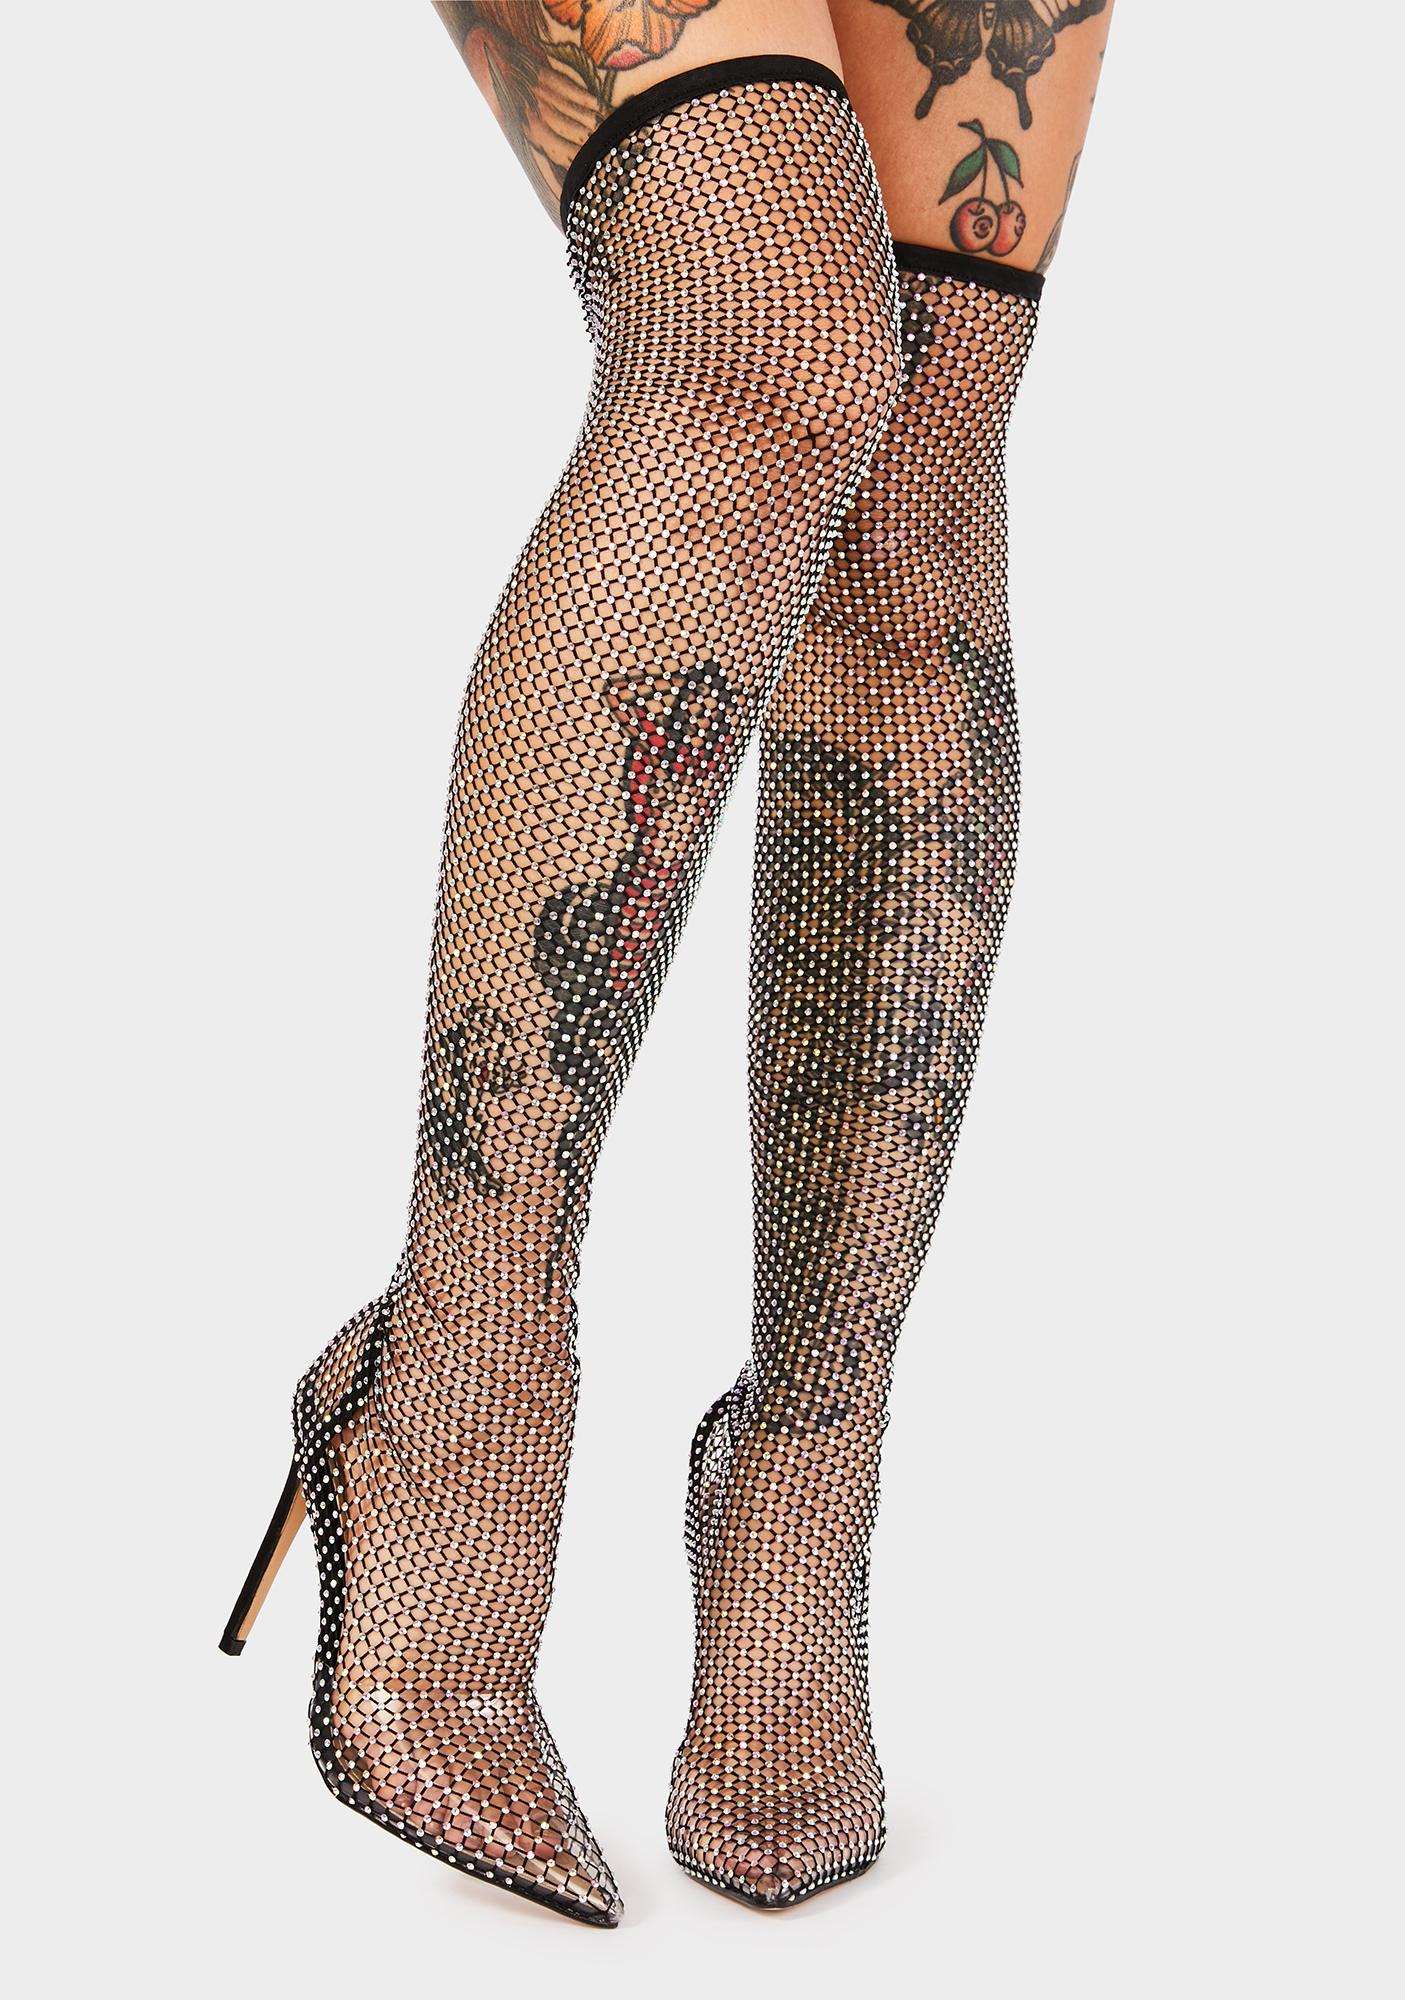 Dare Me Thigh High Boots